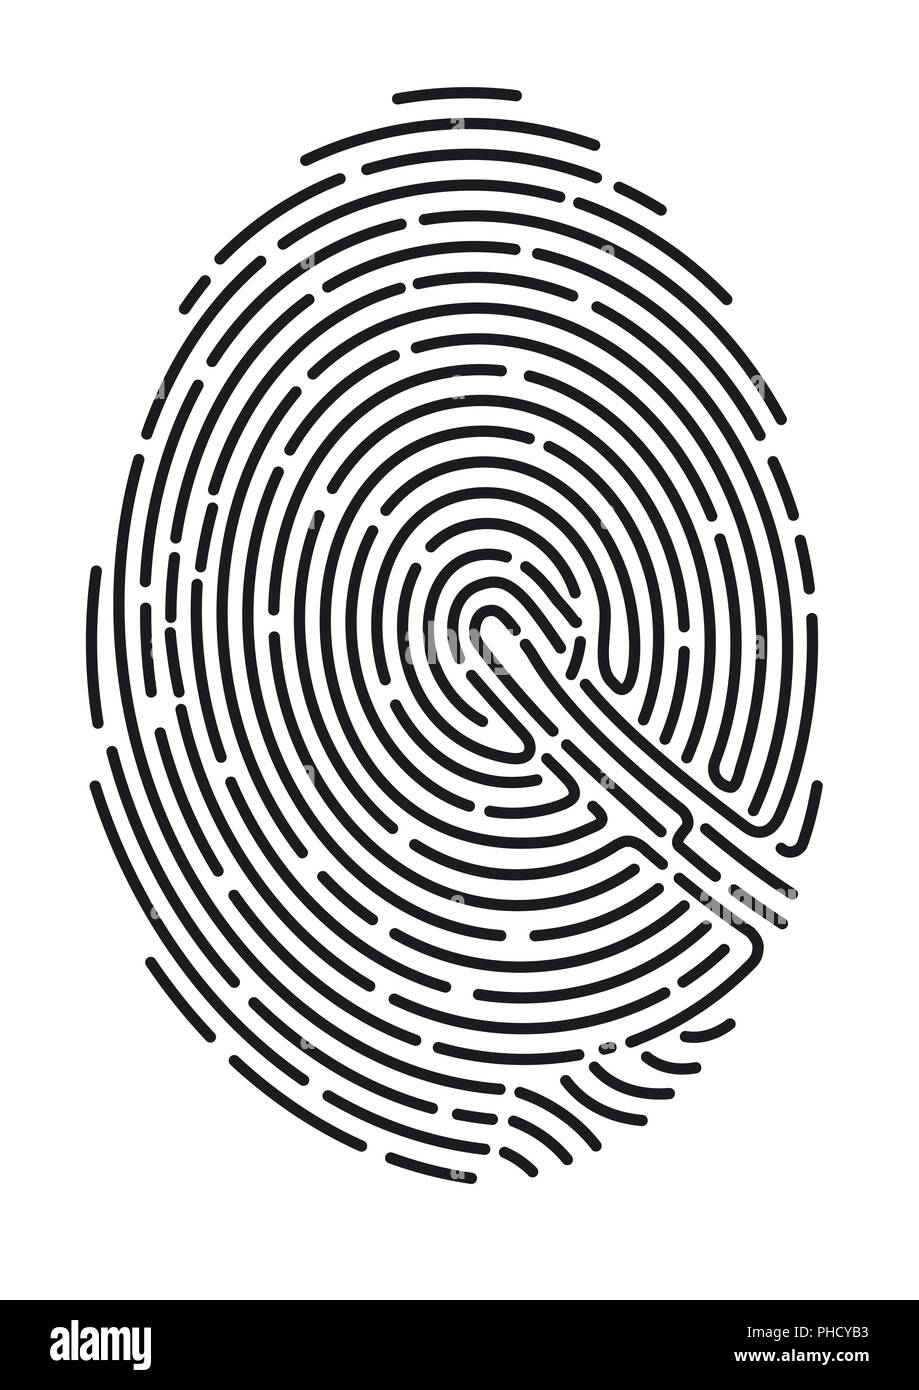 fingerprint. Secure identification - Stock Image